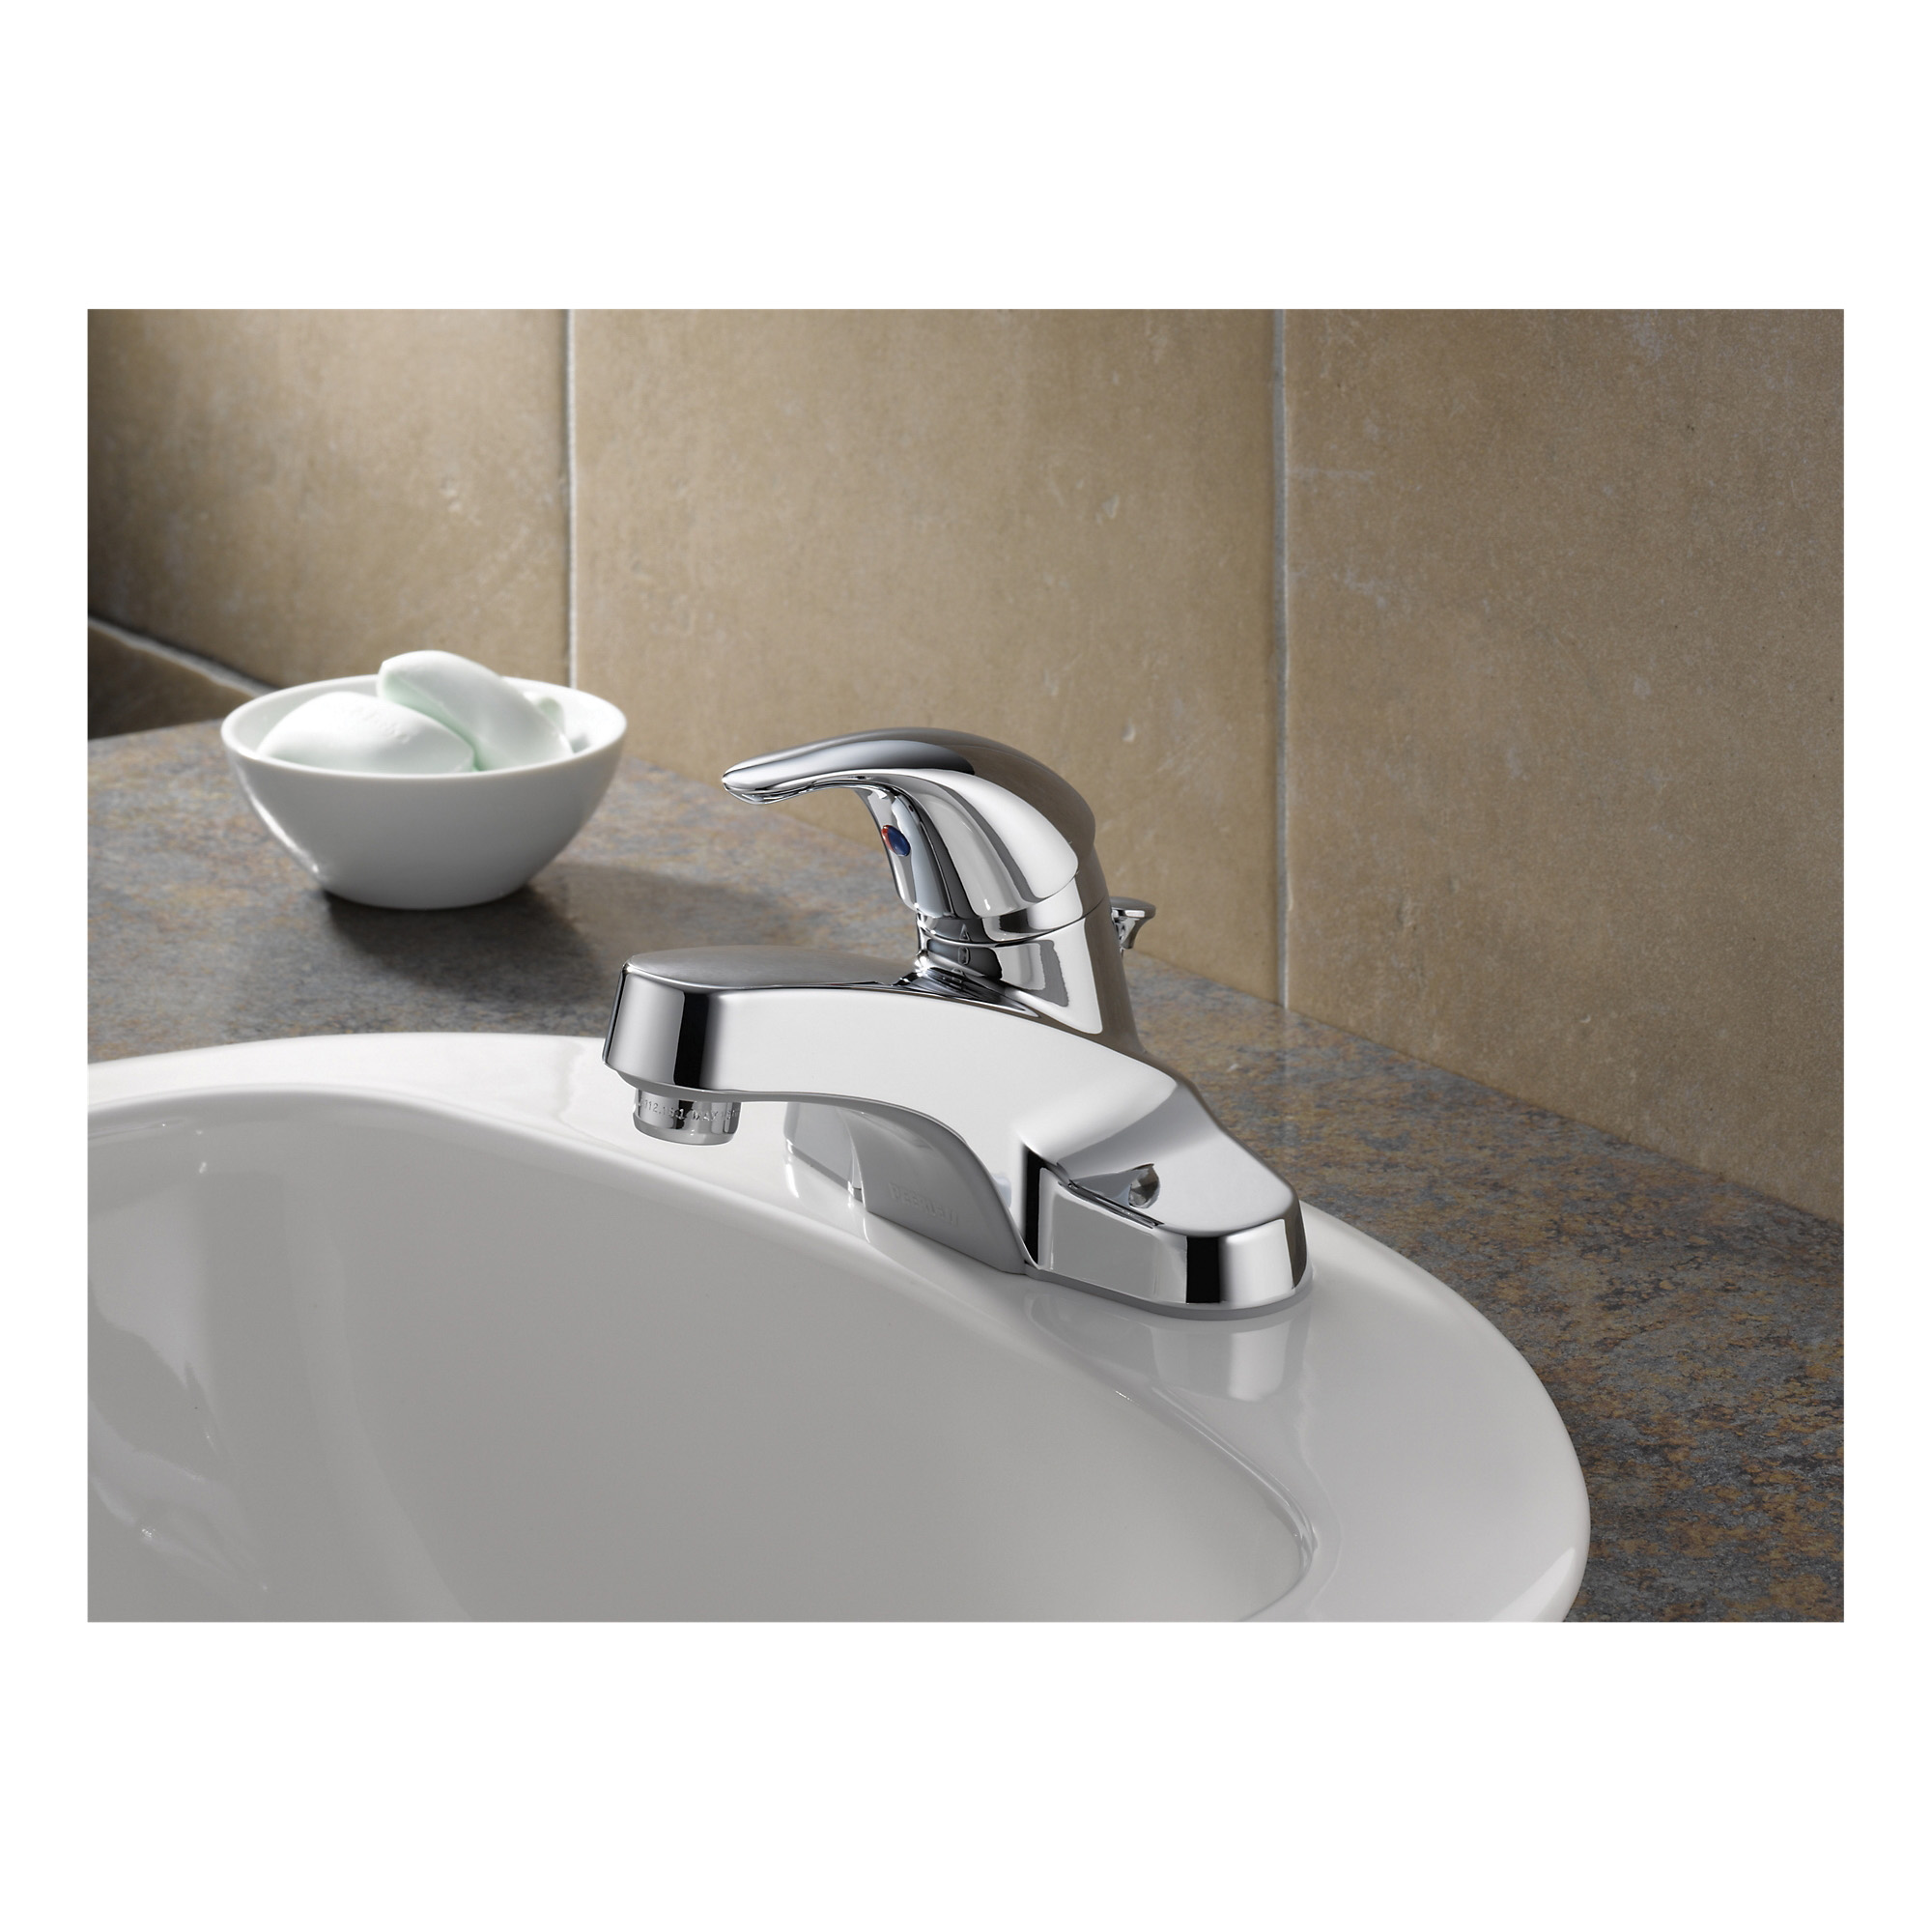 Peerless® P136LF-M Centerset Lavatory Faucet, Chrome Plated, 1 Handle, Metal Pop-Up Drain, 1.2 gpm, Import